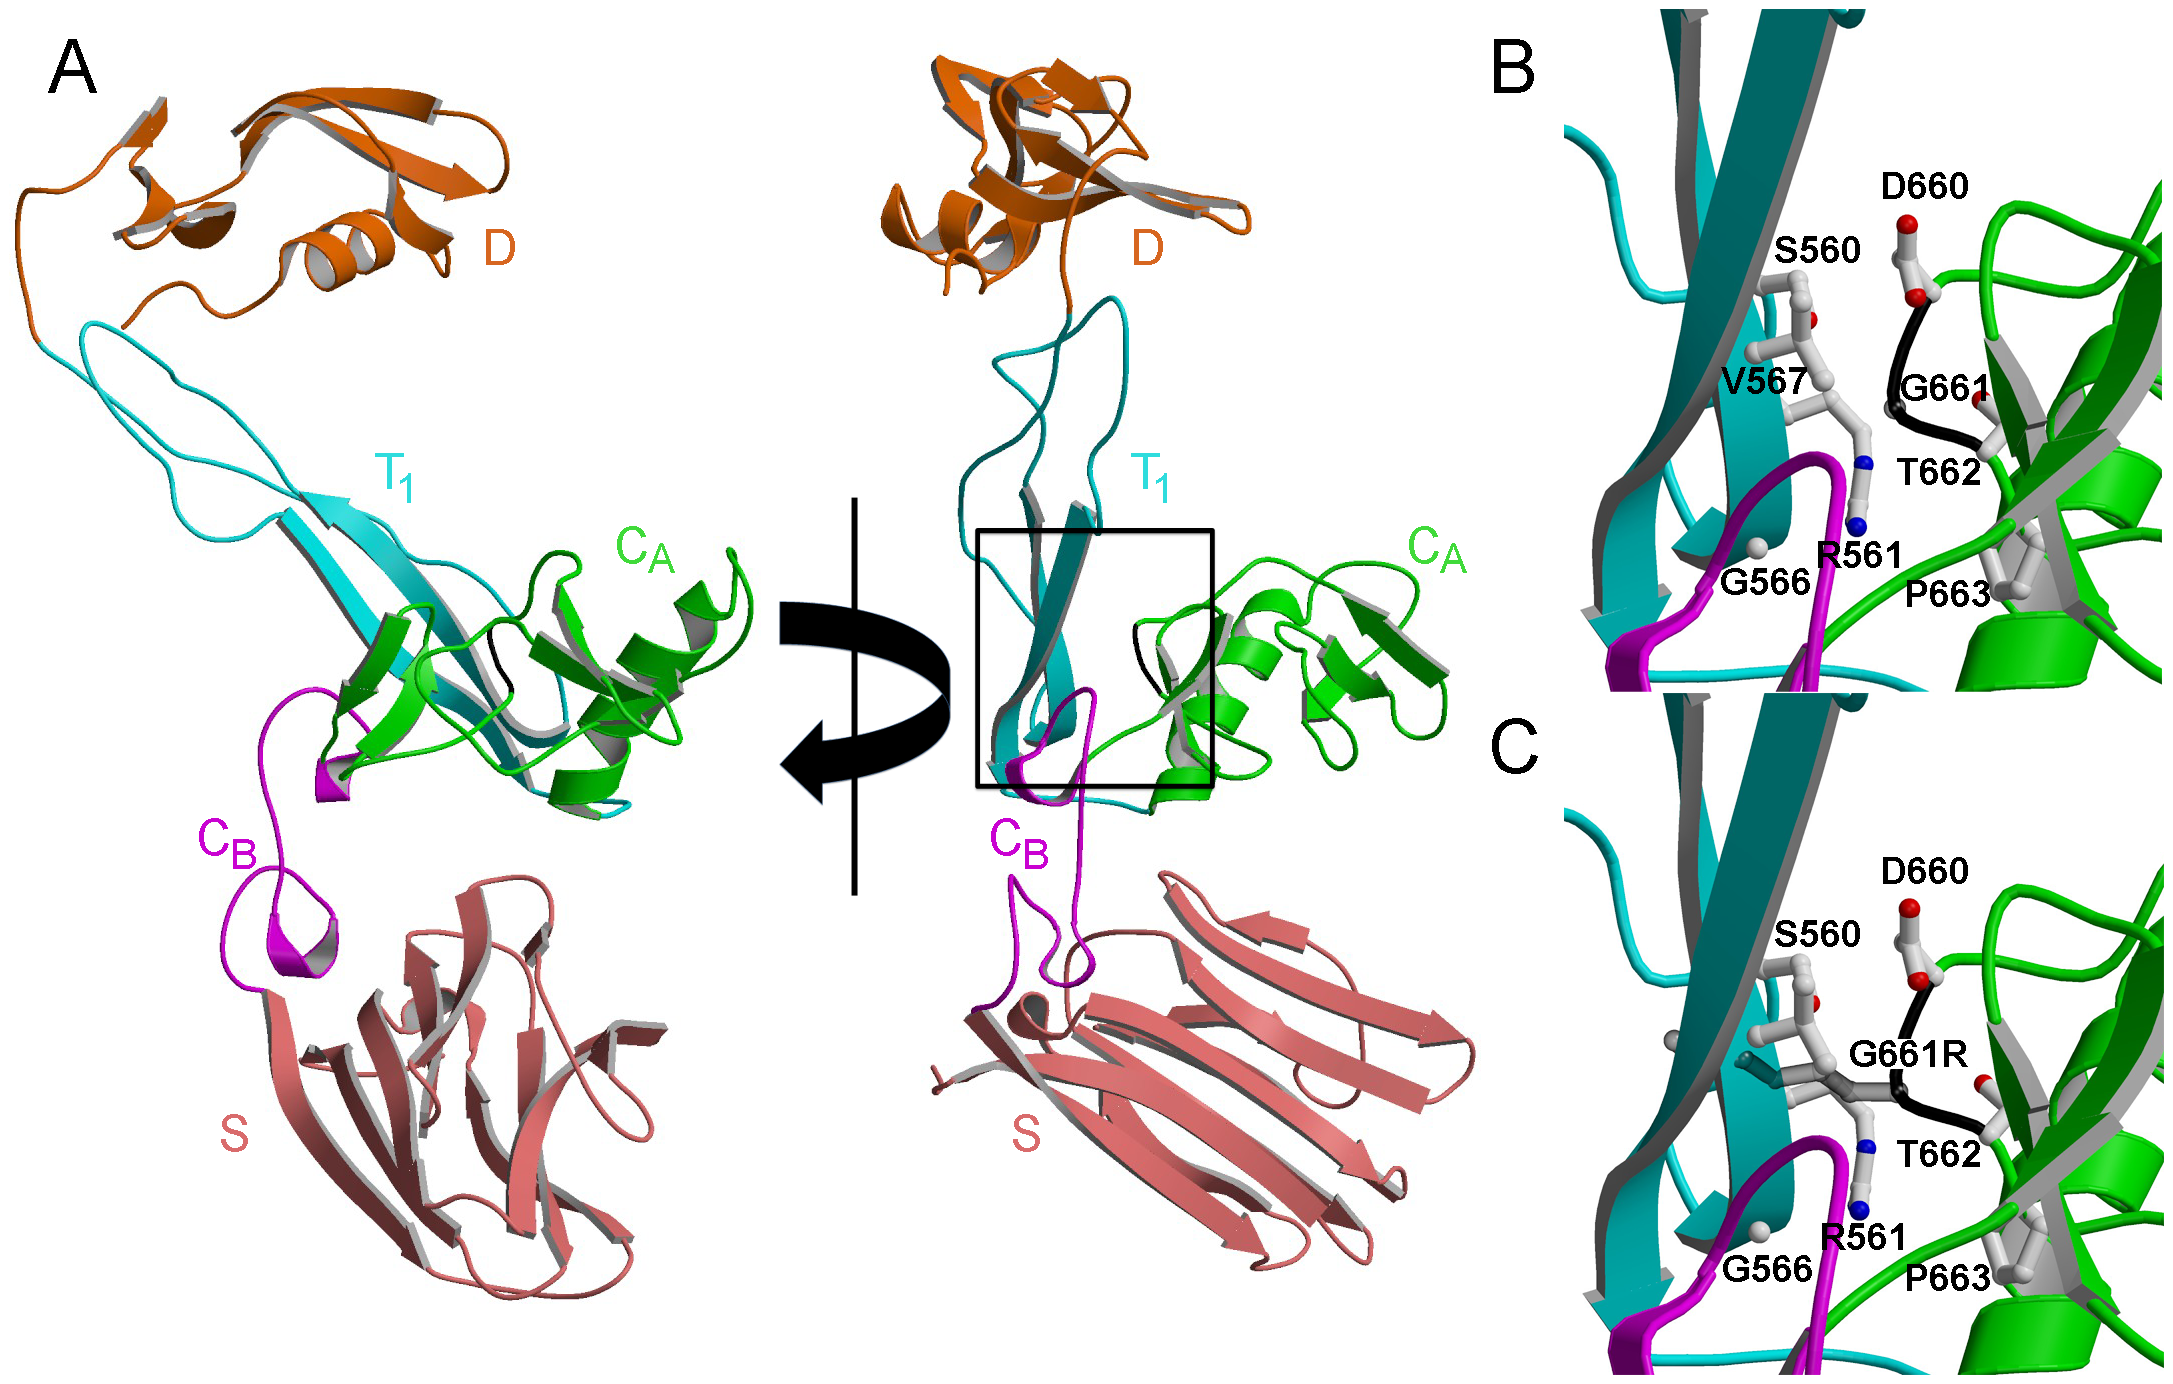 Structural modeling predicts disruption of the normal protein fold by the Gly661Arg variant of ADAMTS10.